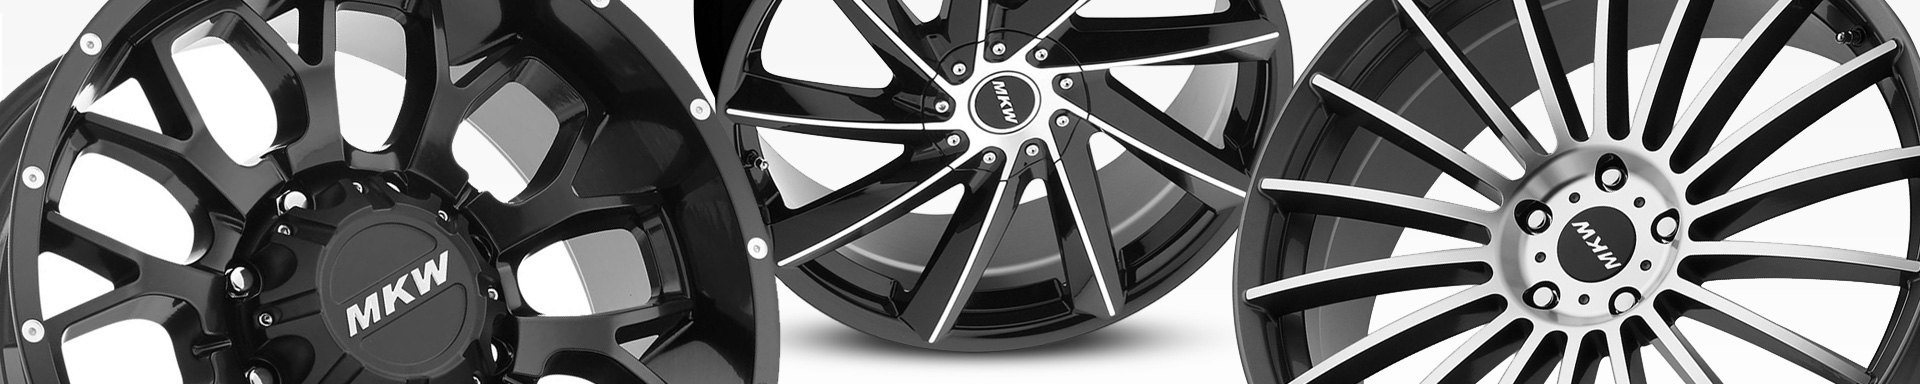 Universal MKW WHEELS & RIMS